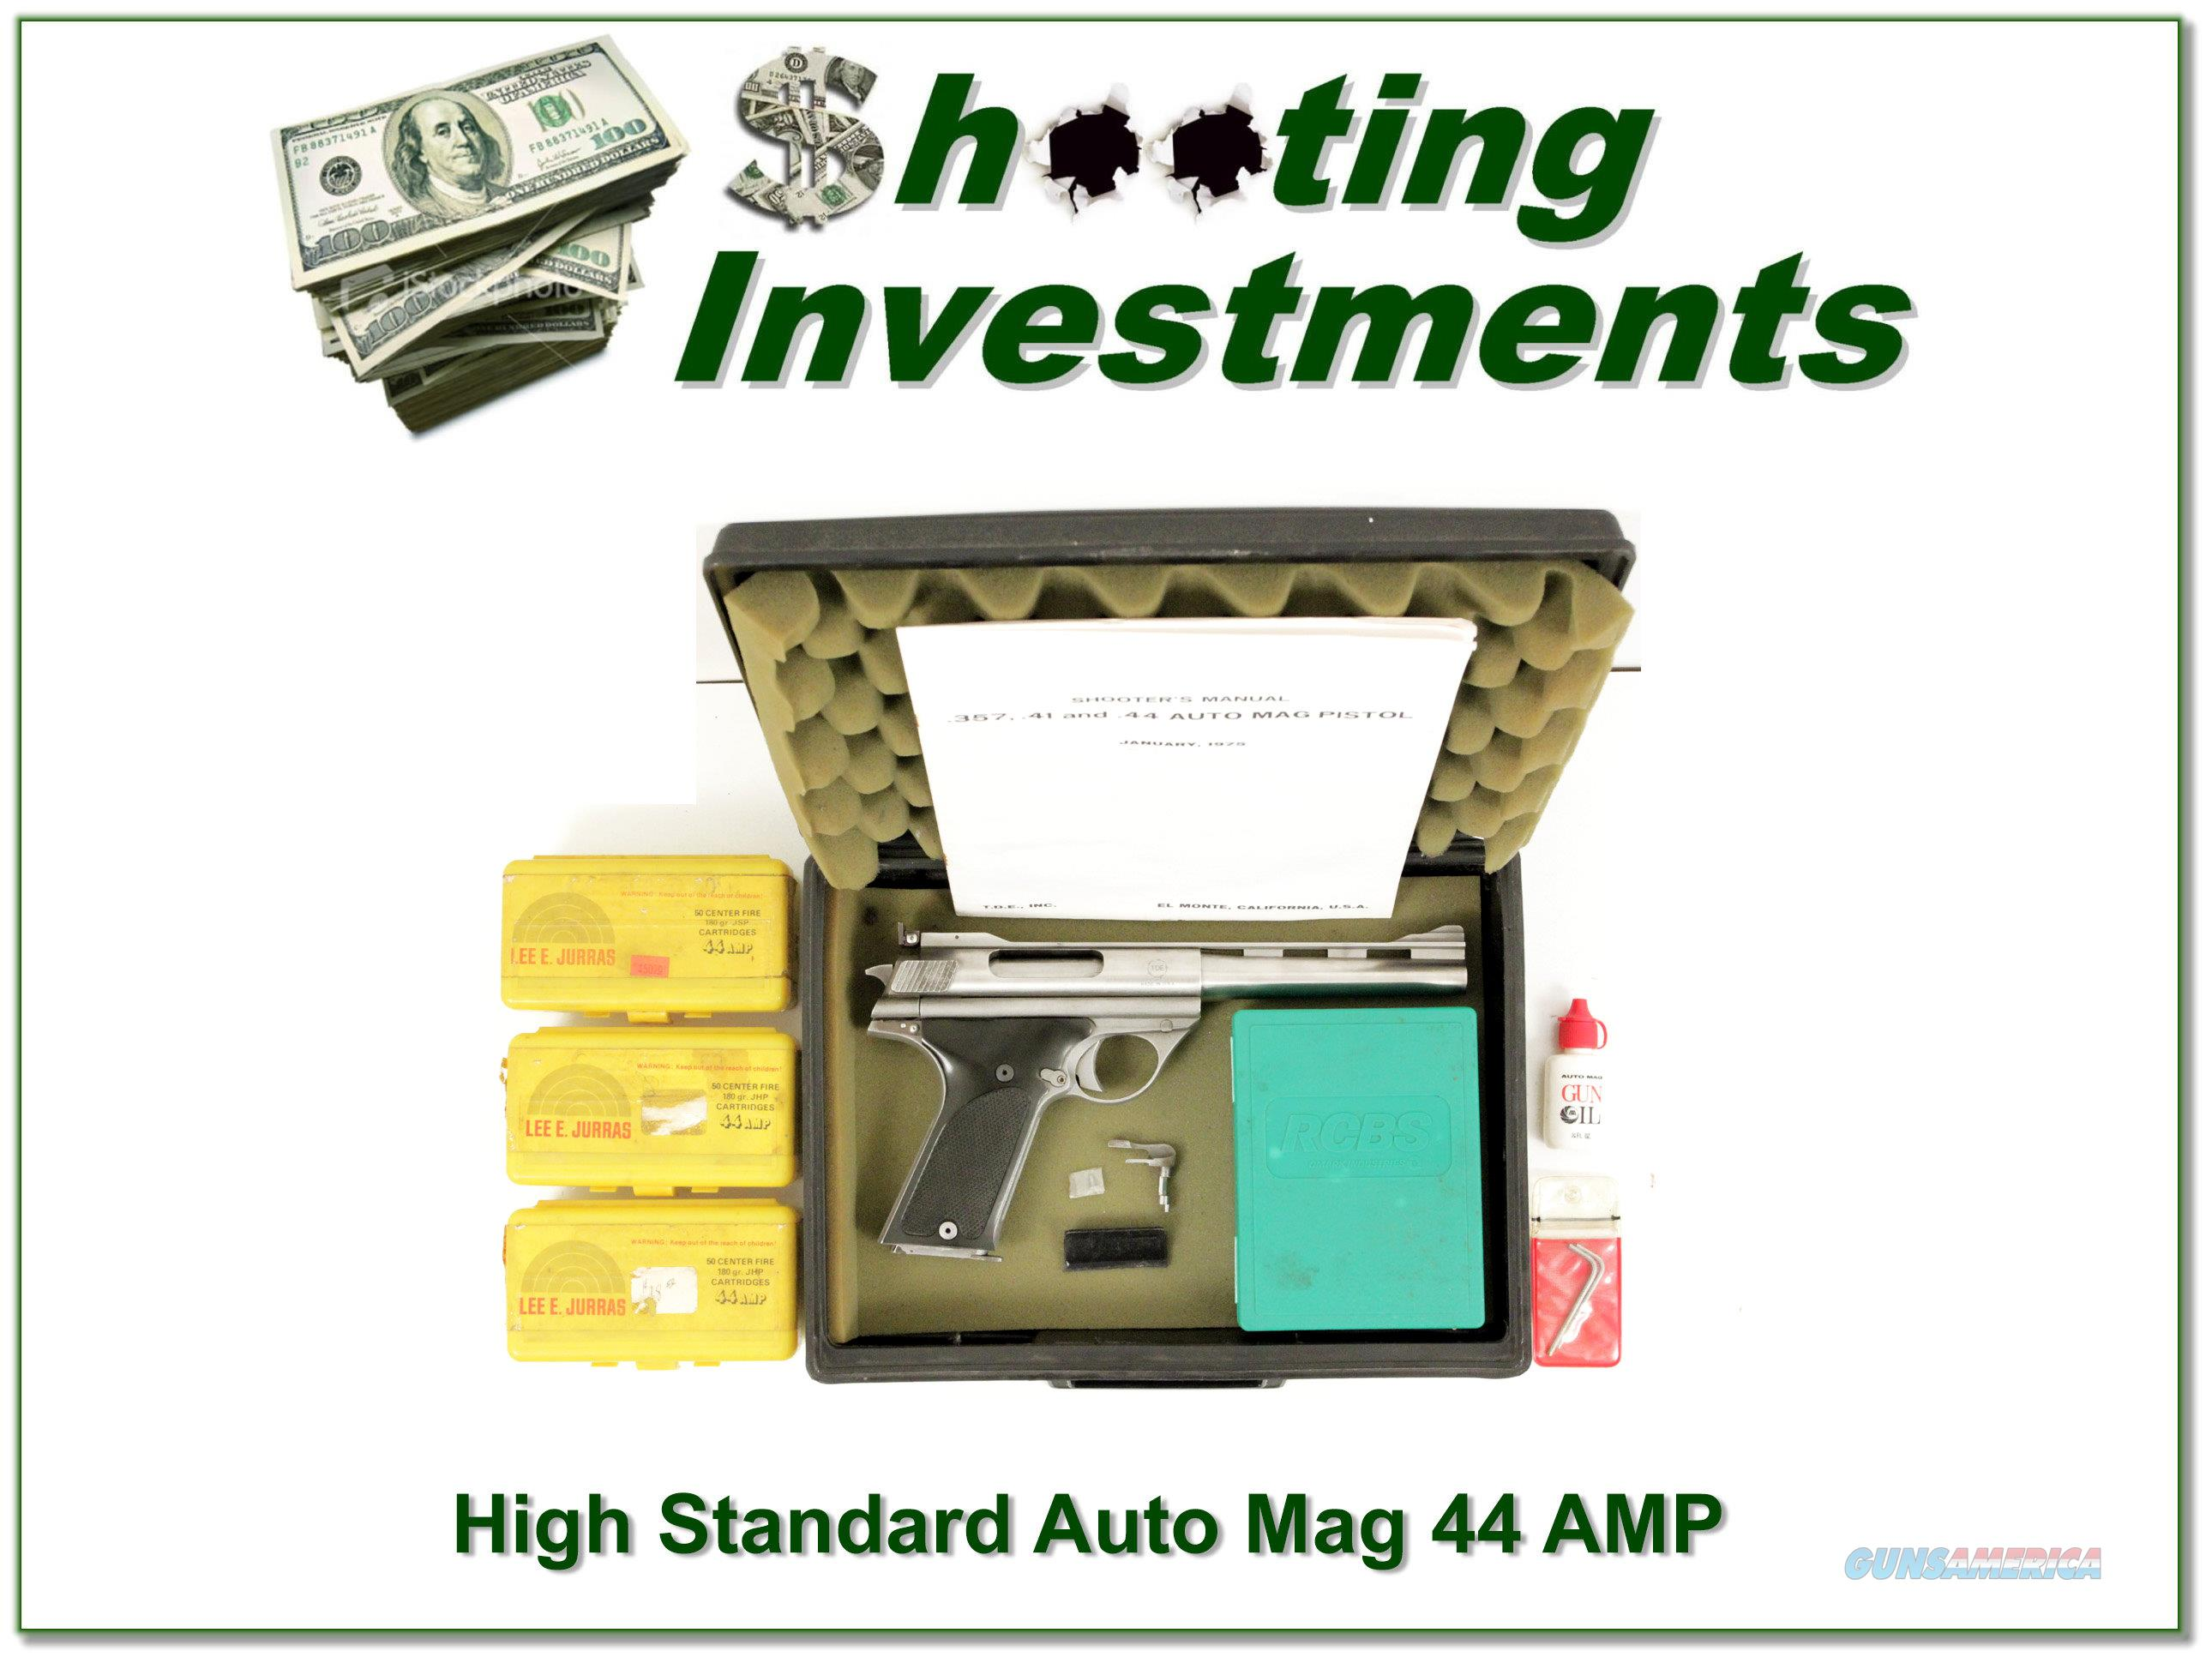 High Standard Model 180 .44 AMP in box with ammo  Guns > Pistols > High Standard Pistols